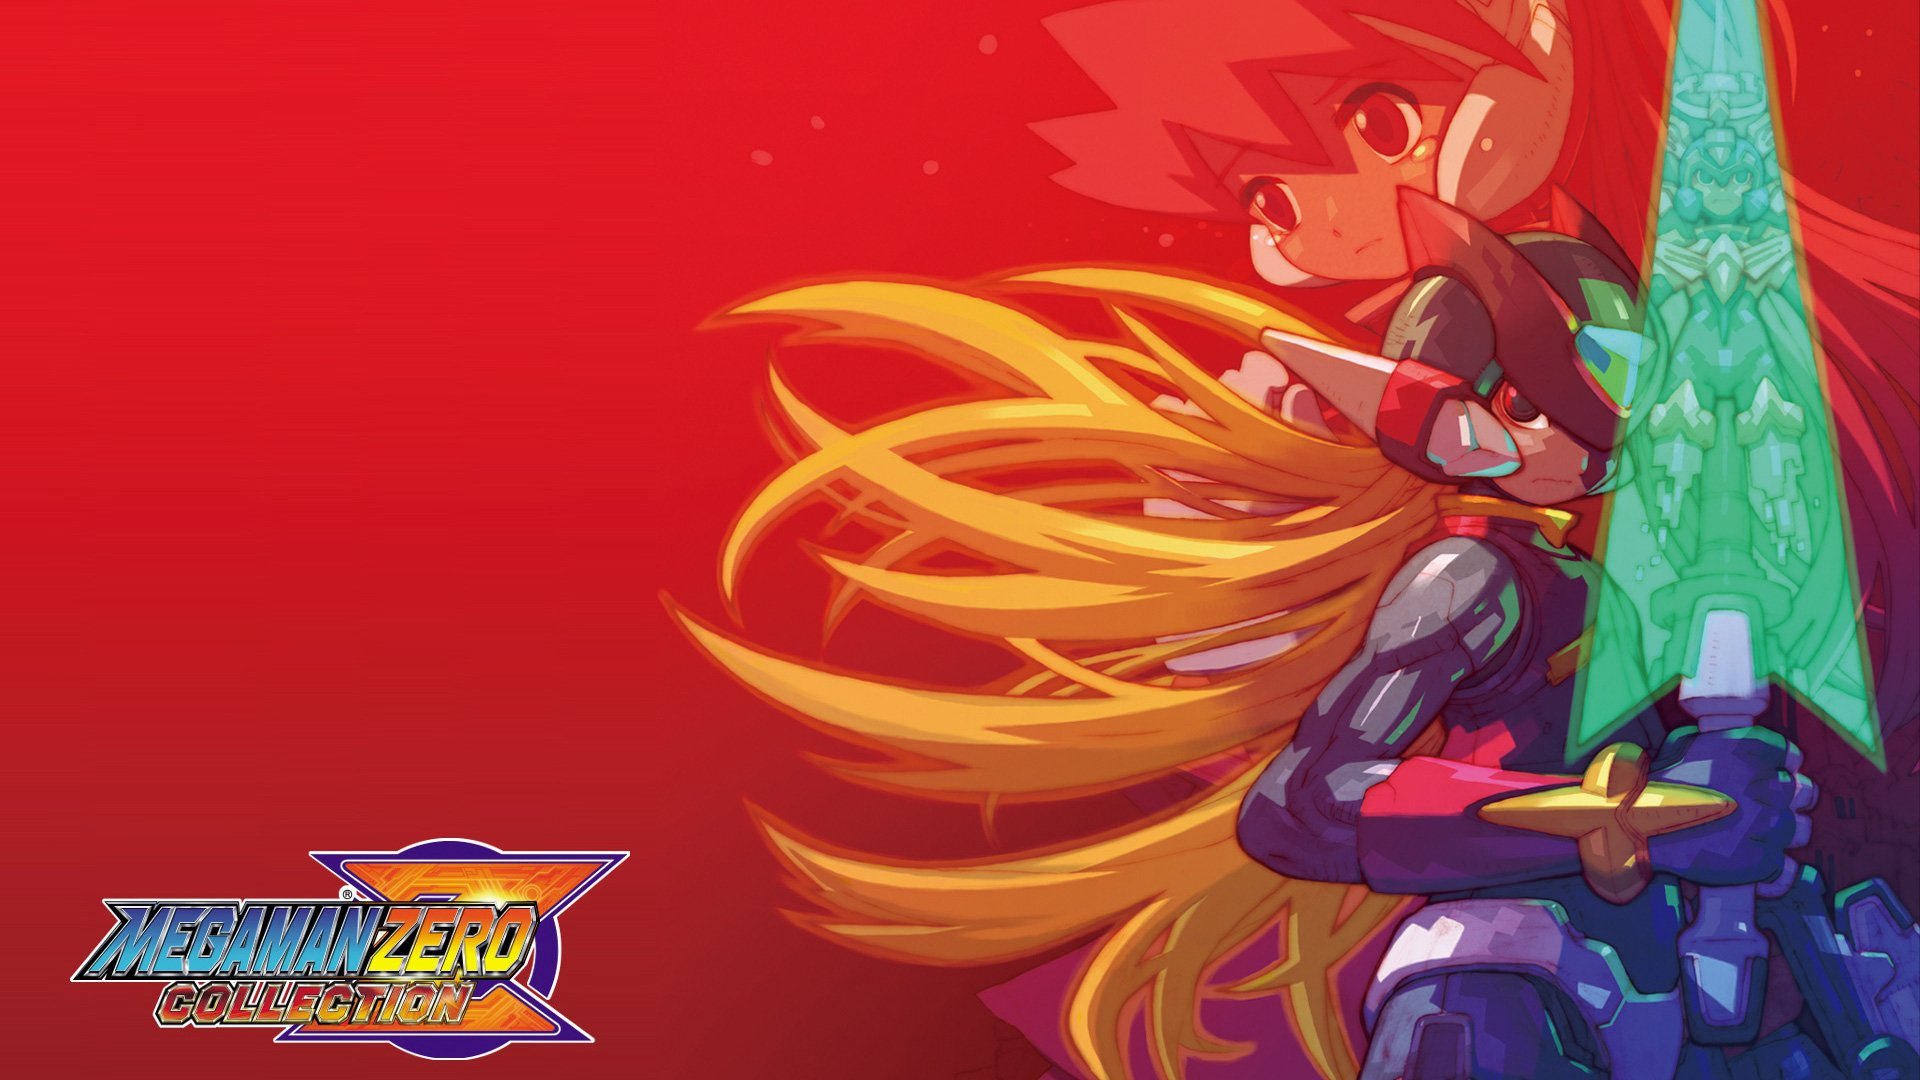 Mega Man Zero Collection Hd Wallpaper Background Image